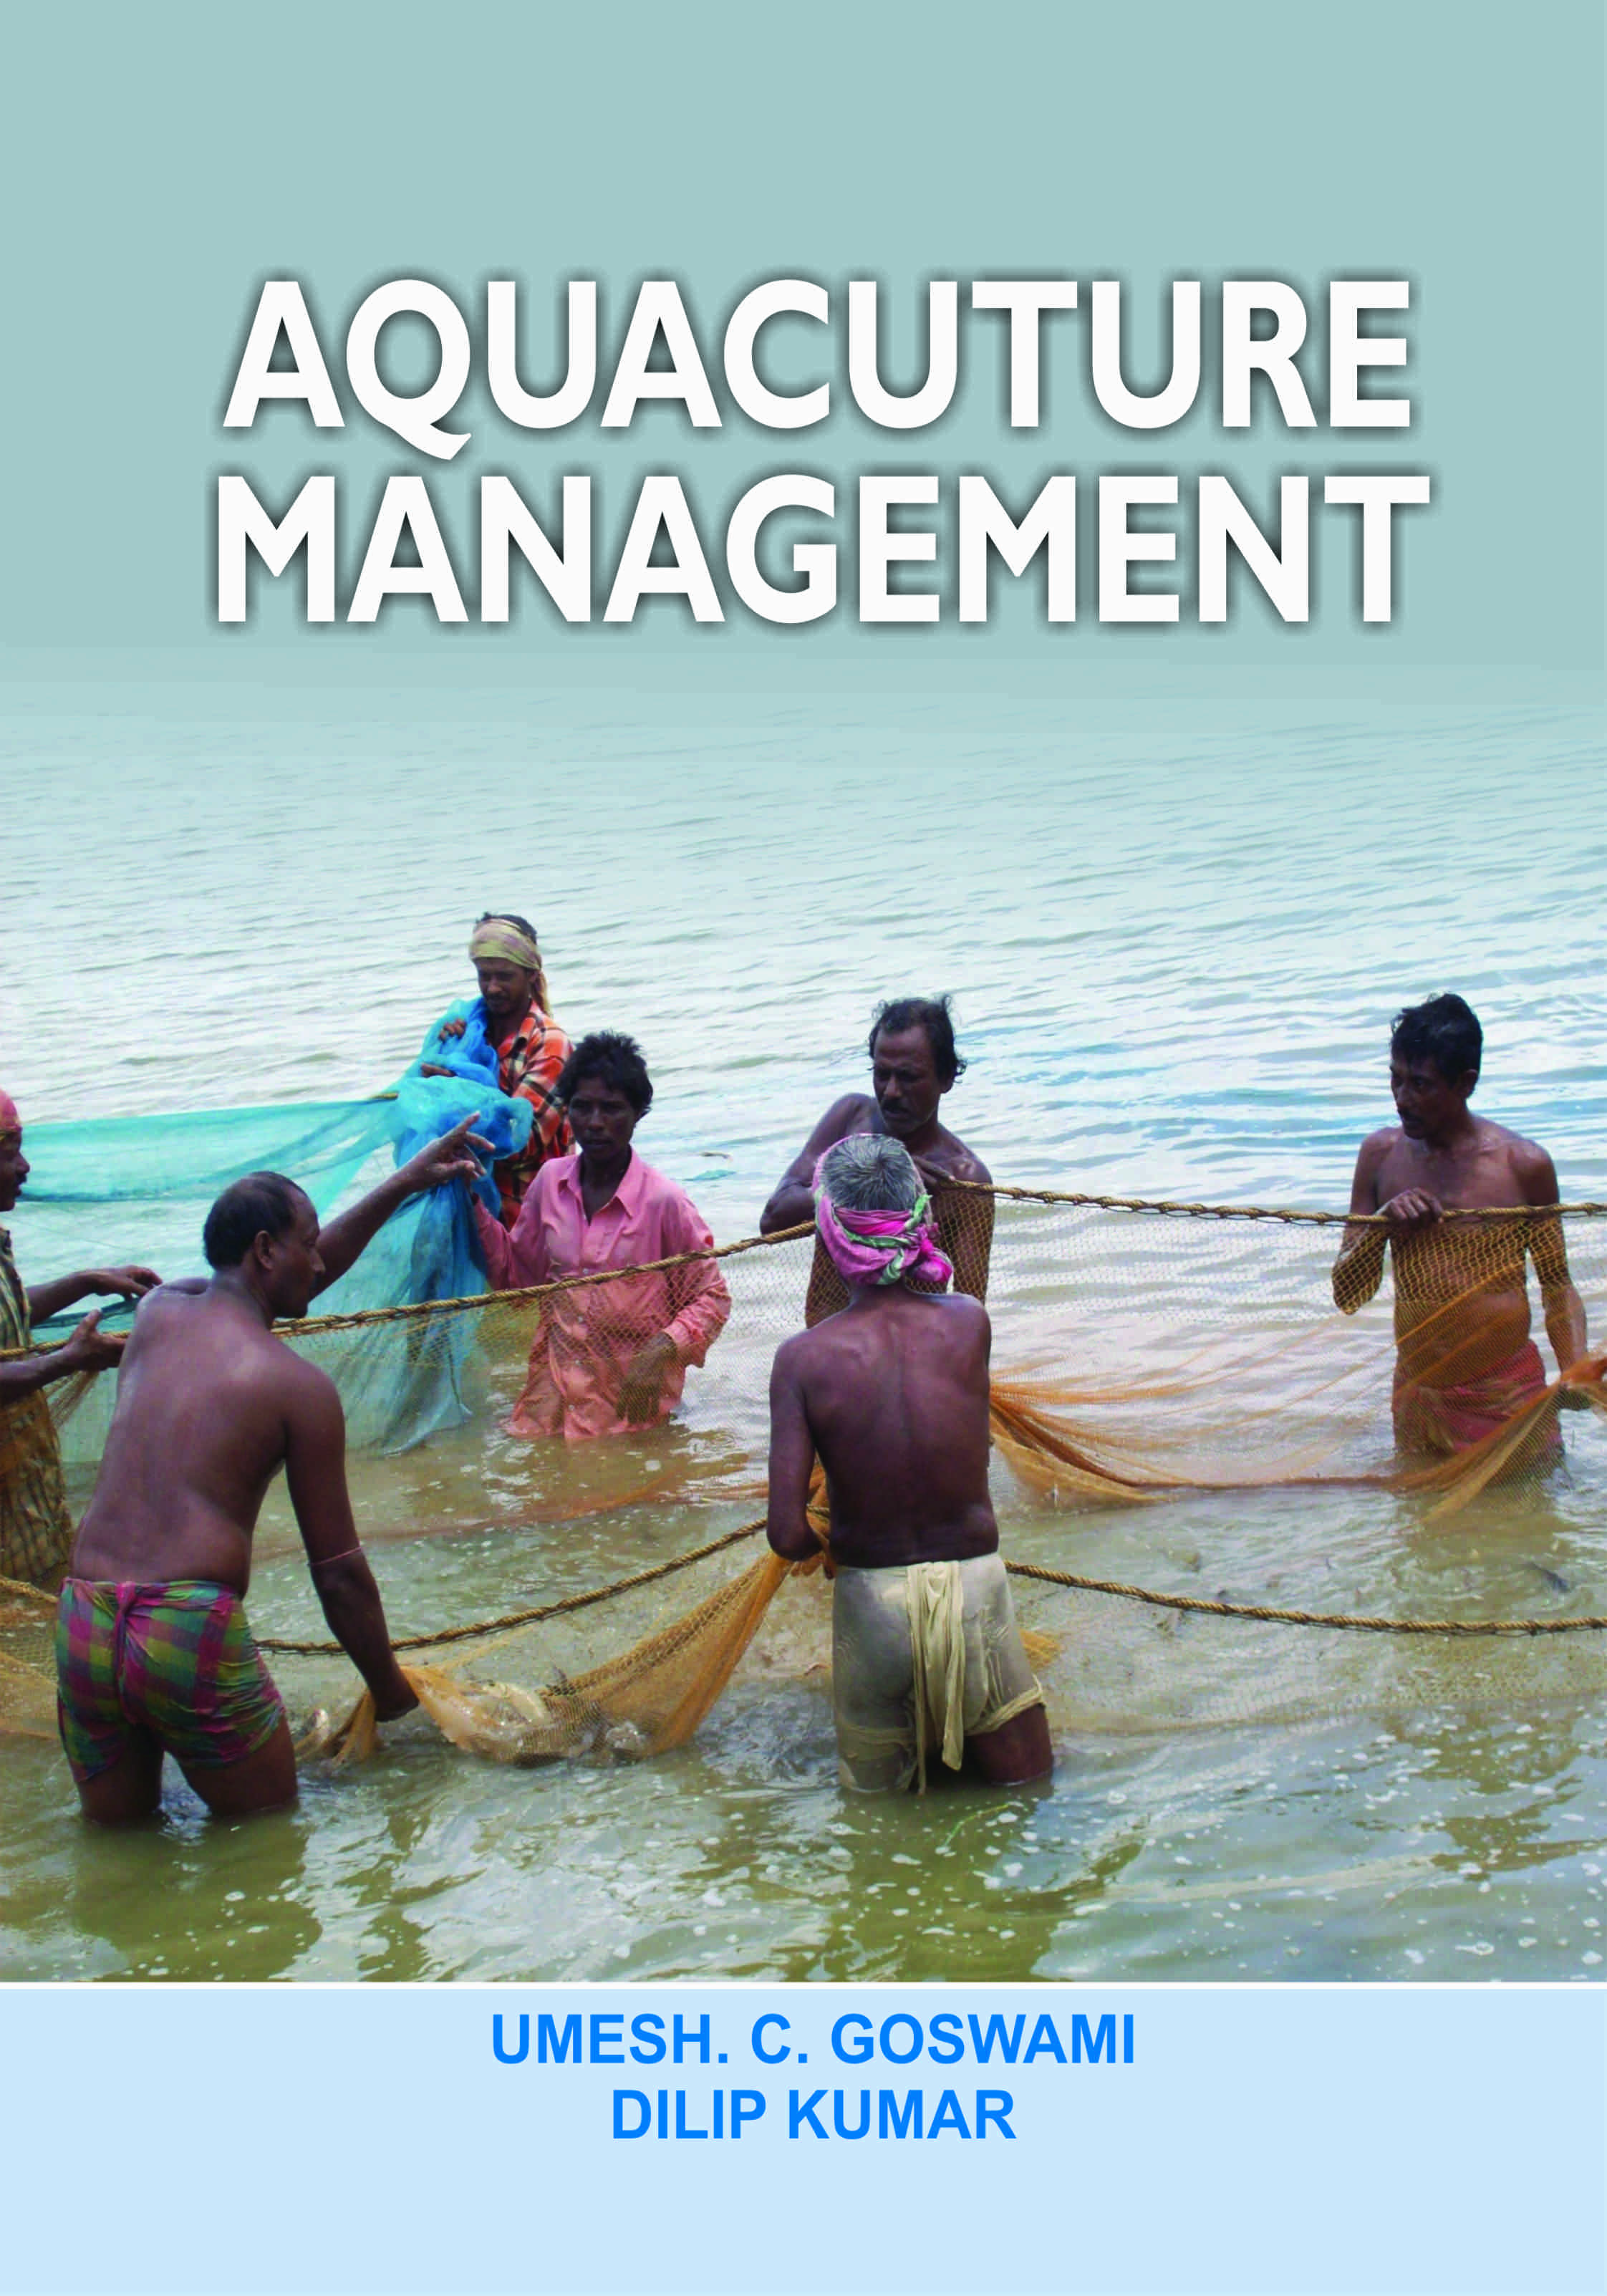 Aquaculture Management